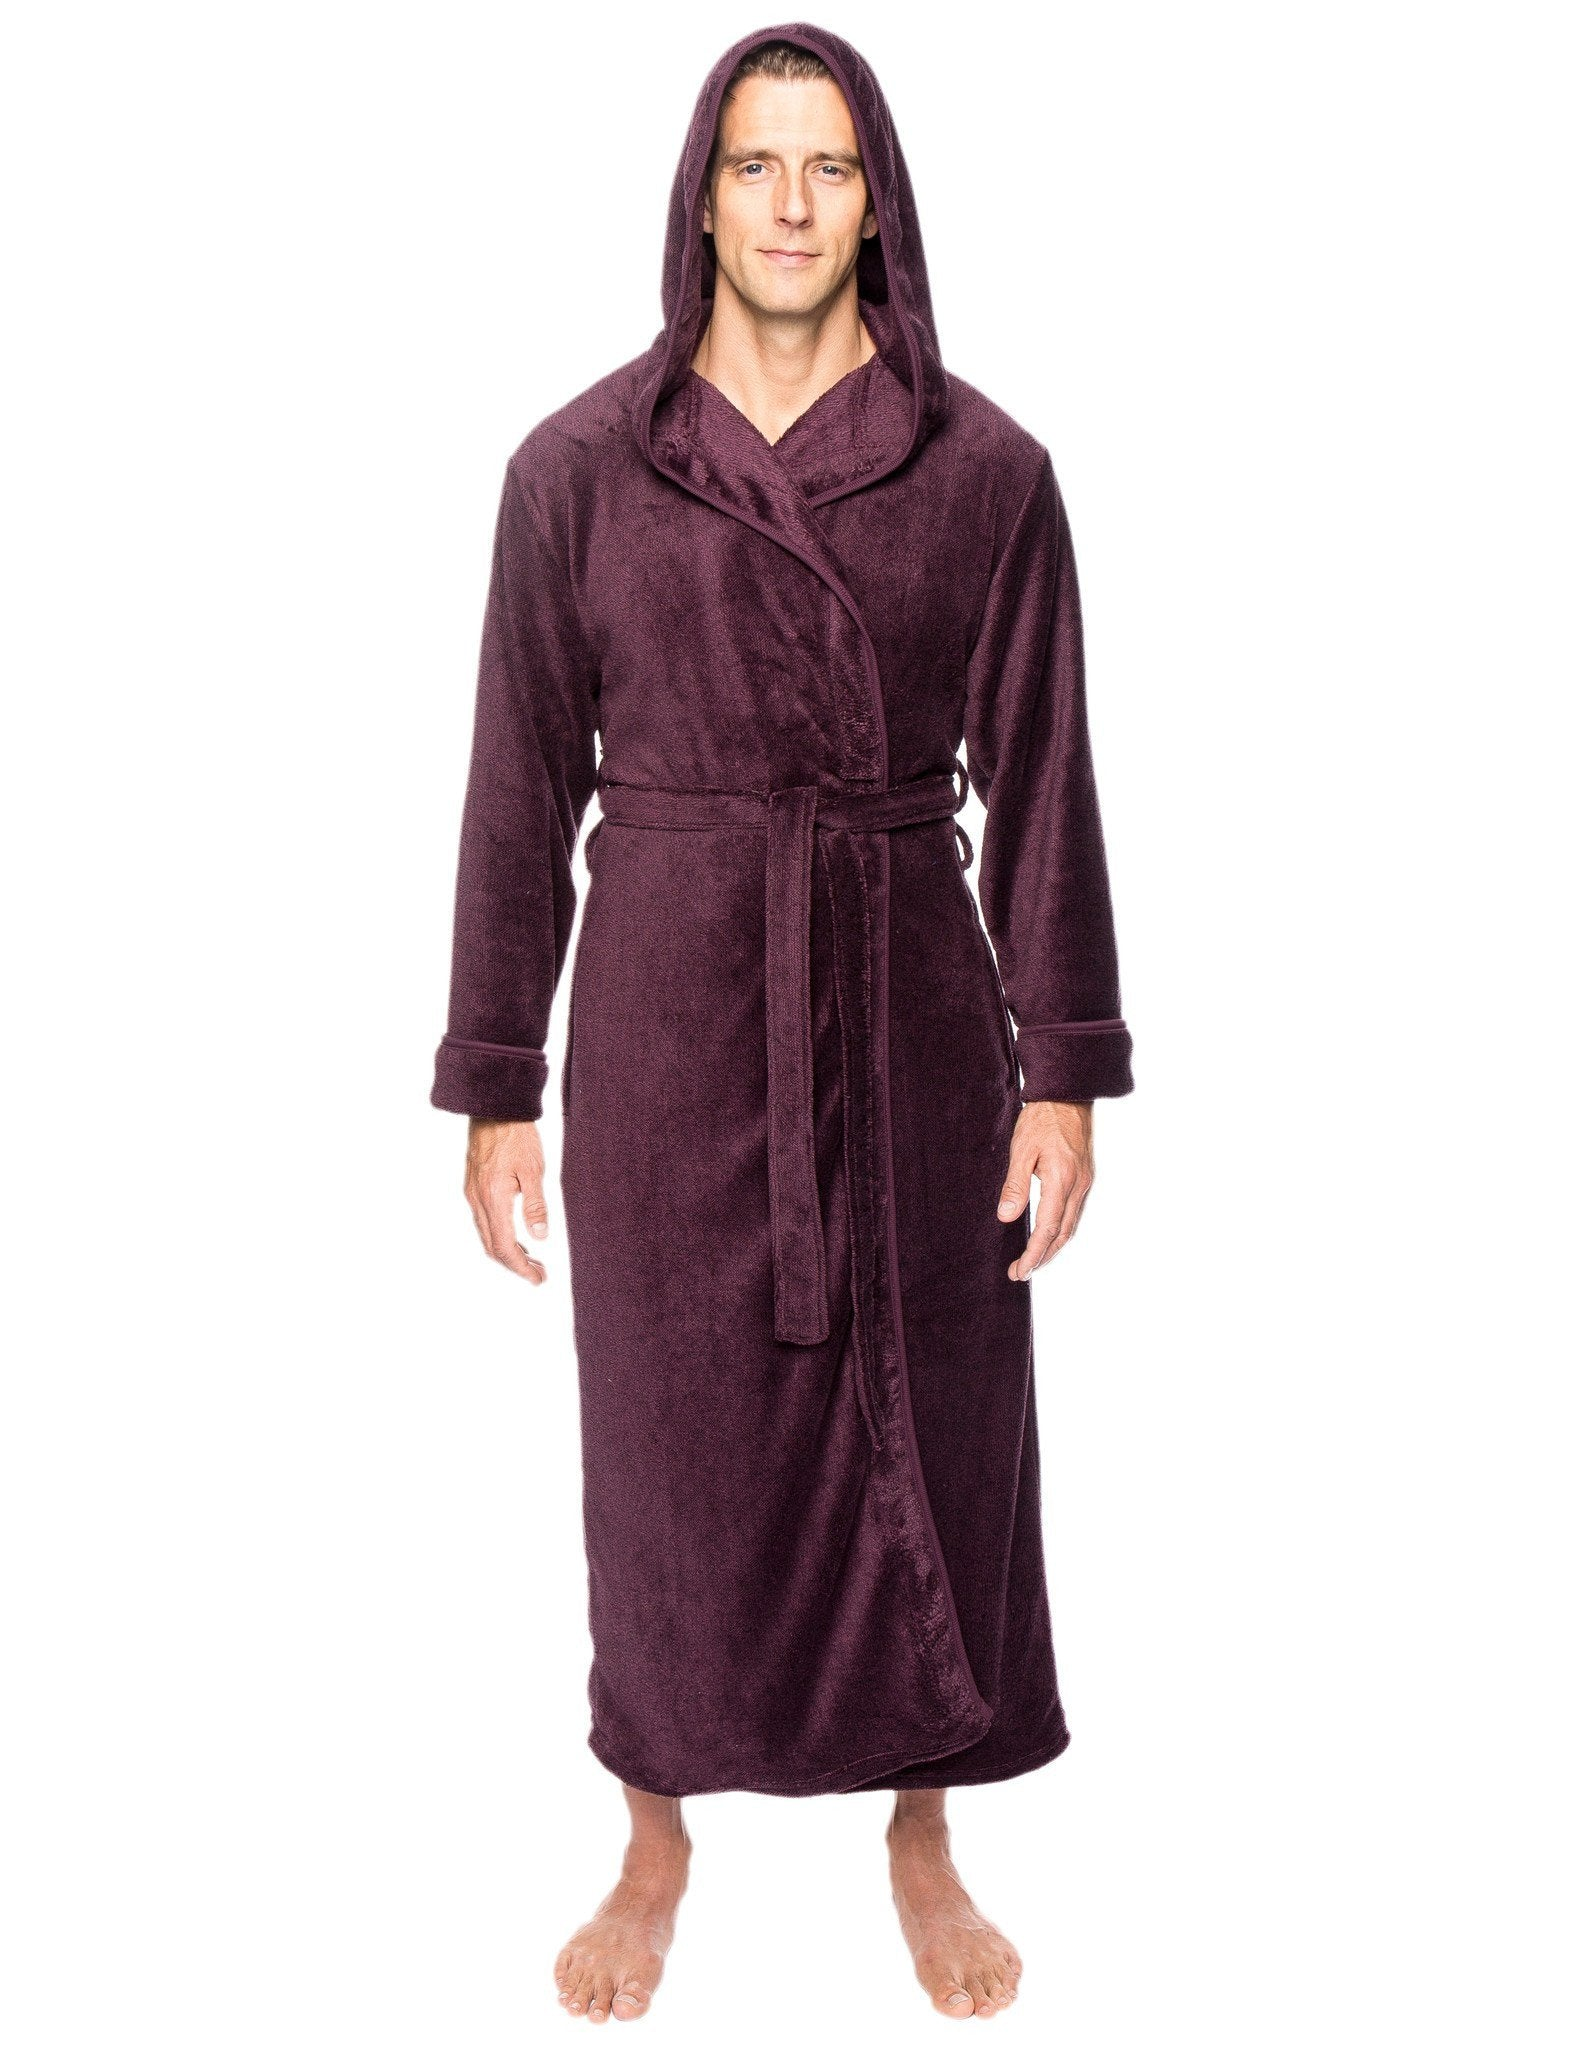 Men s Premium Coral Fleece Long Hooded Plush Spa Bath Robe - Marl Fig Black 784ab15d9